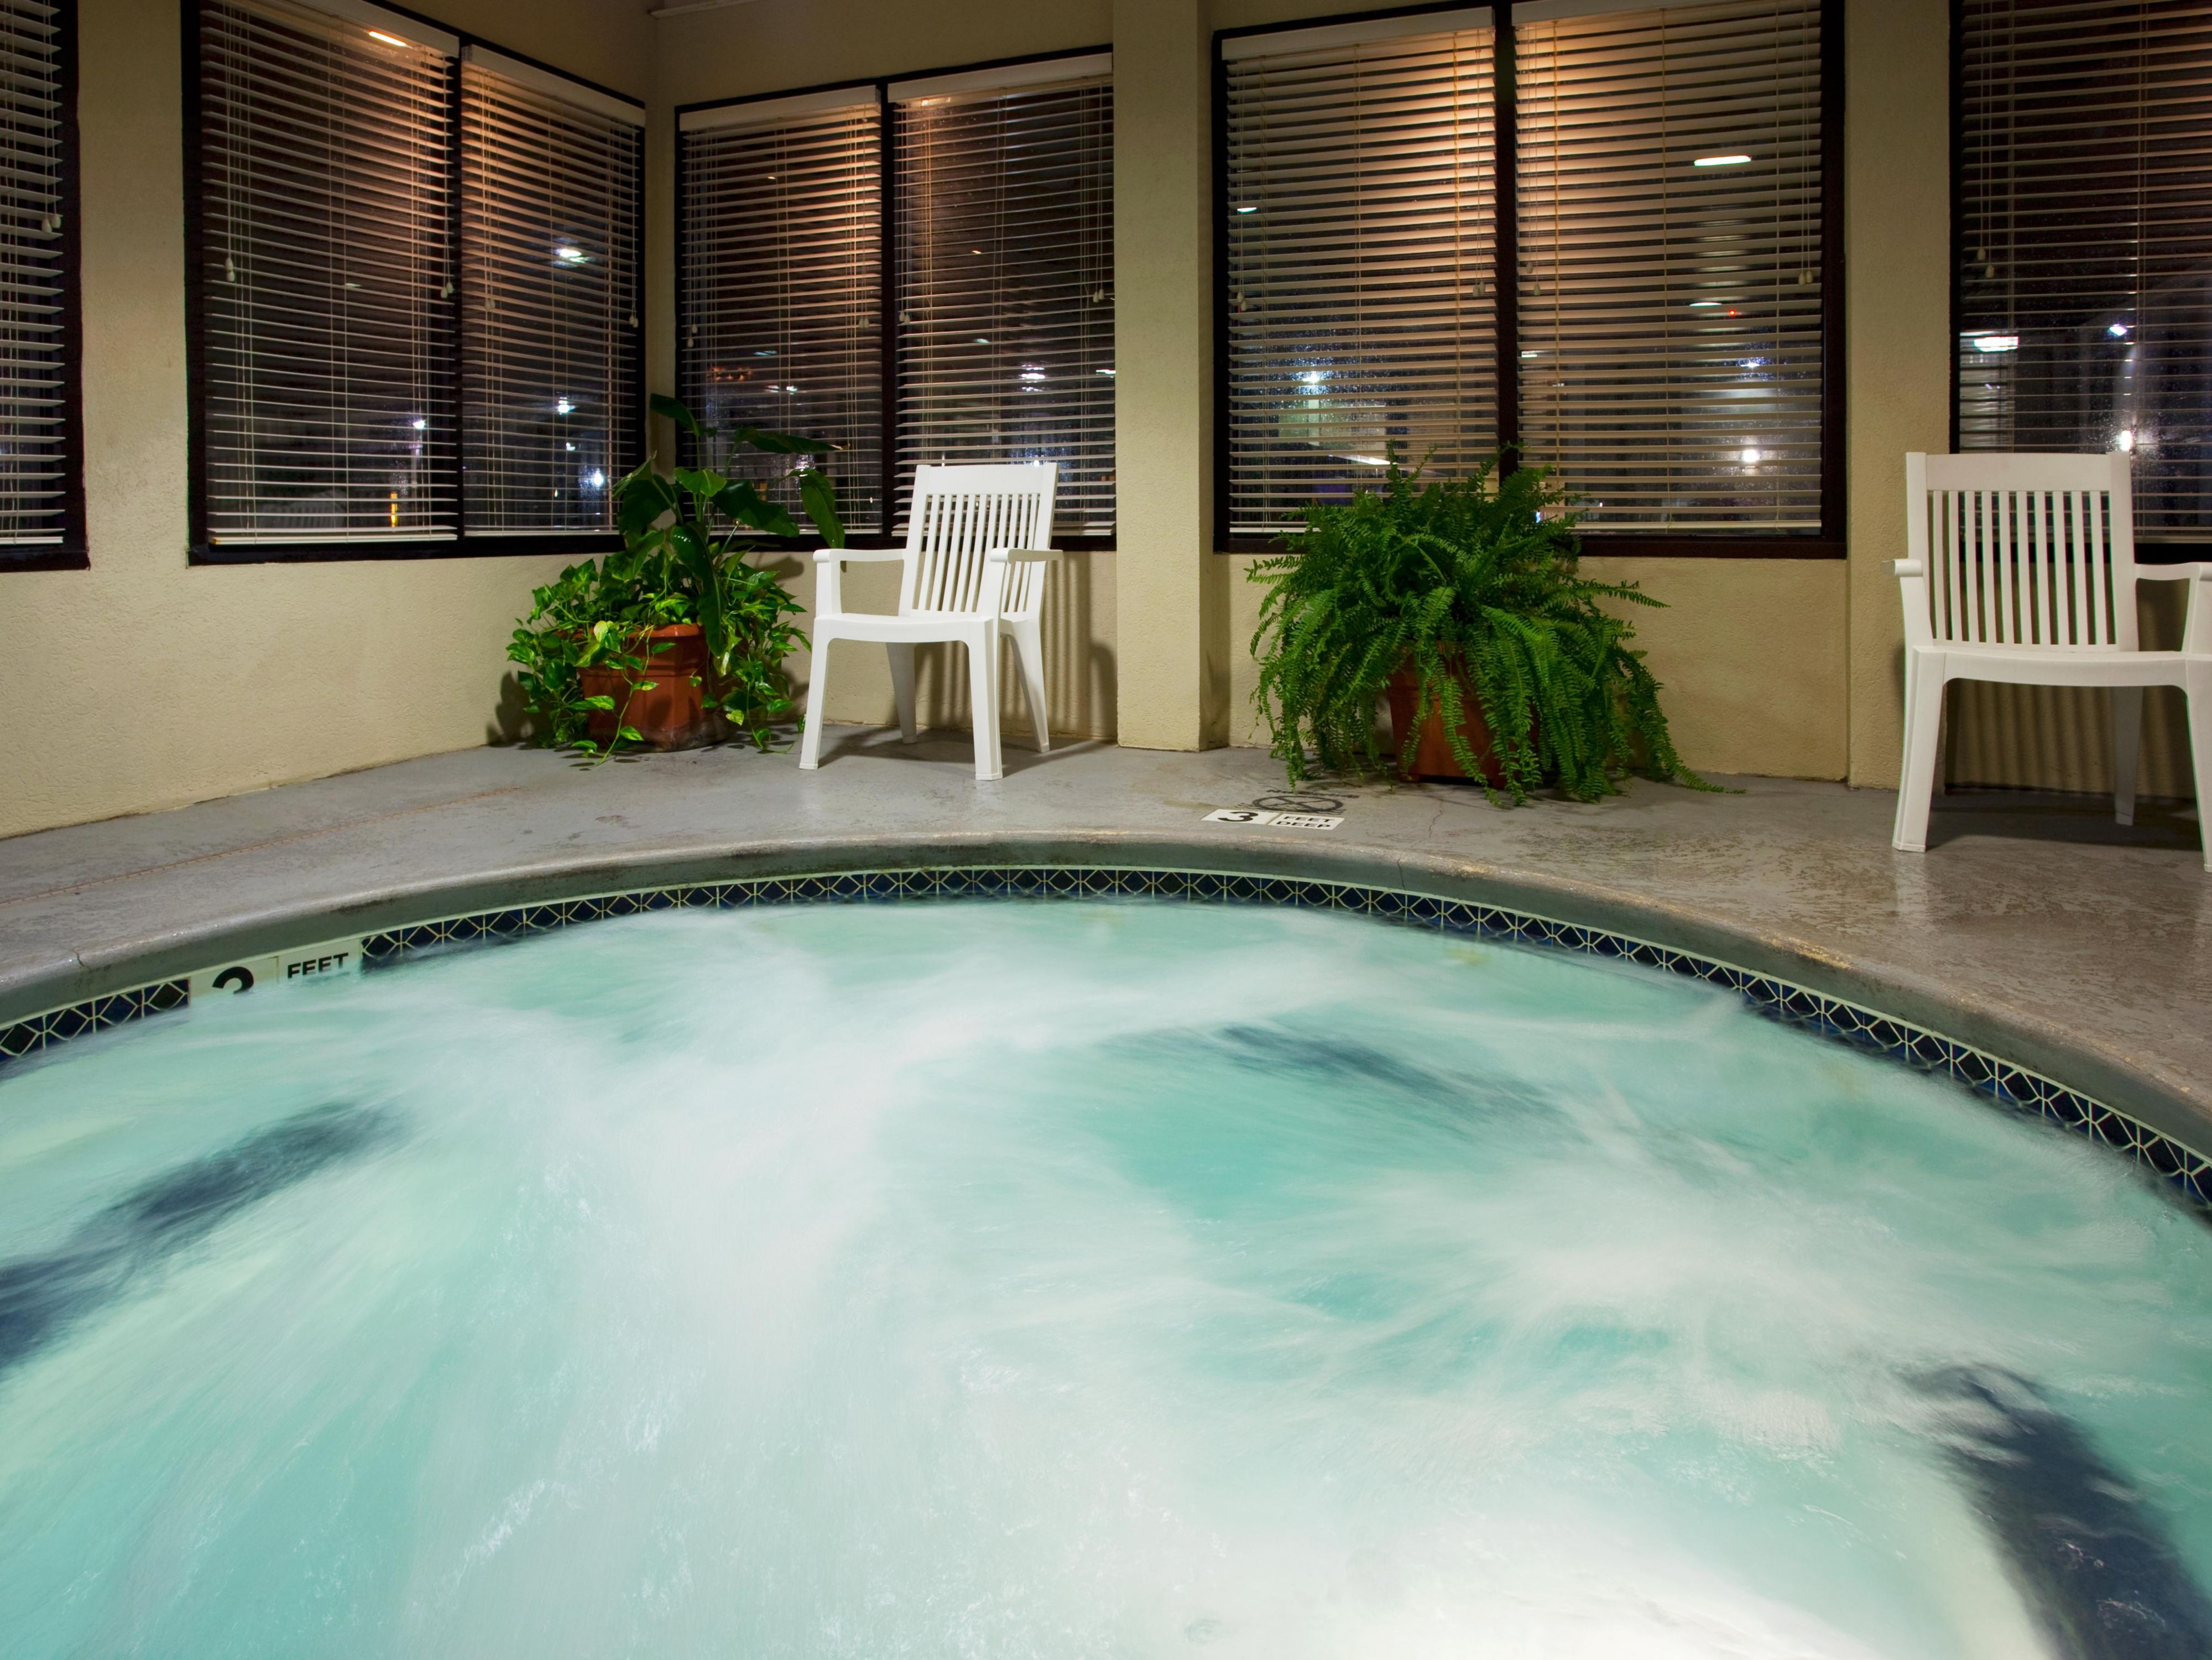 Our whirlpool is a great place to relax after a busy day.